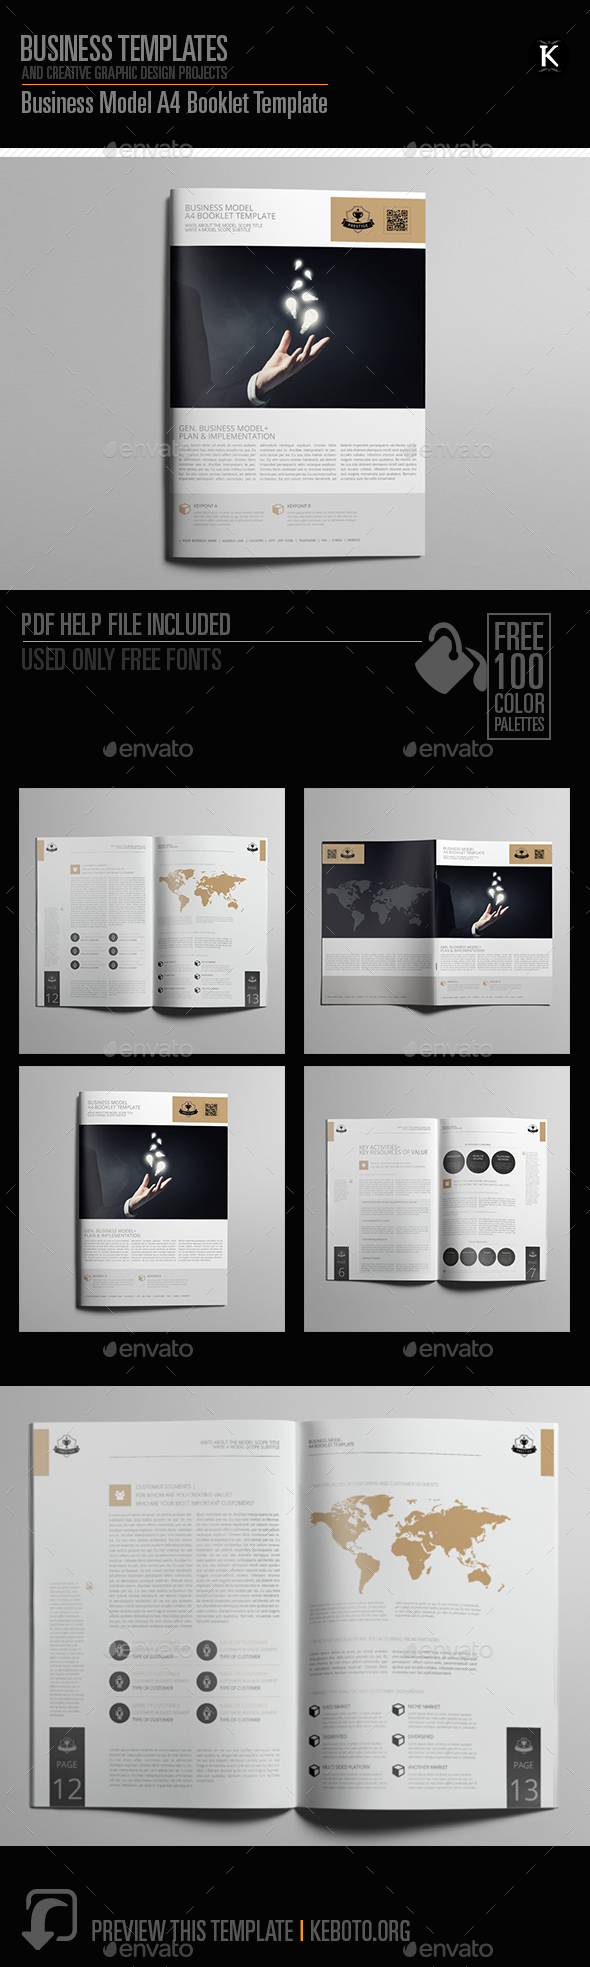 Business Model A4 Booklet Template - Miscellaneous Print Templates